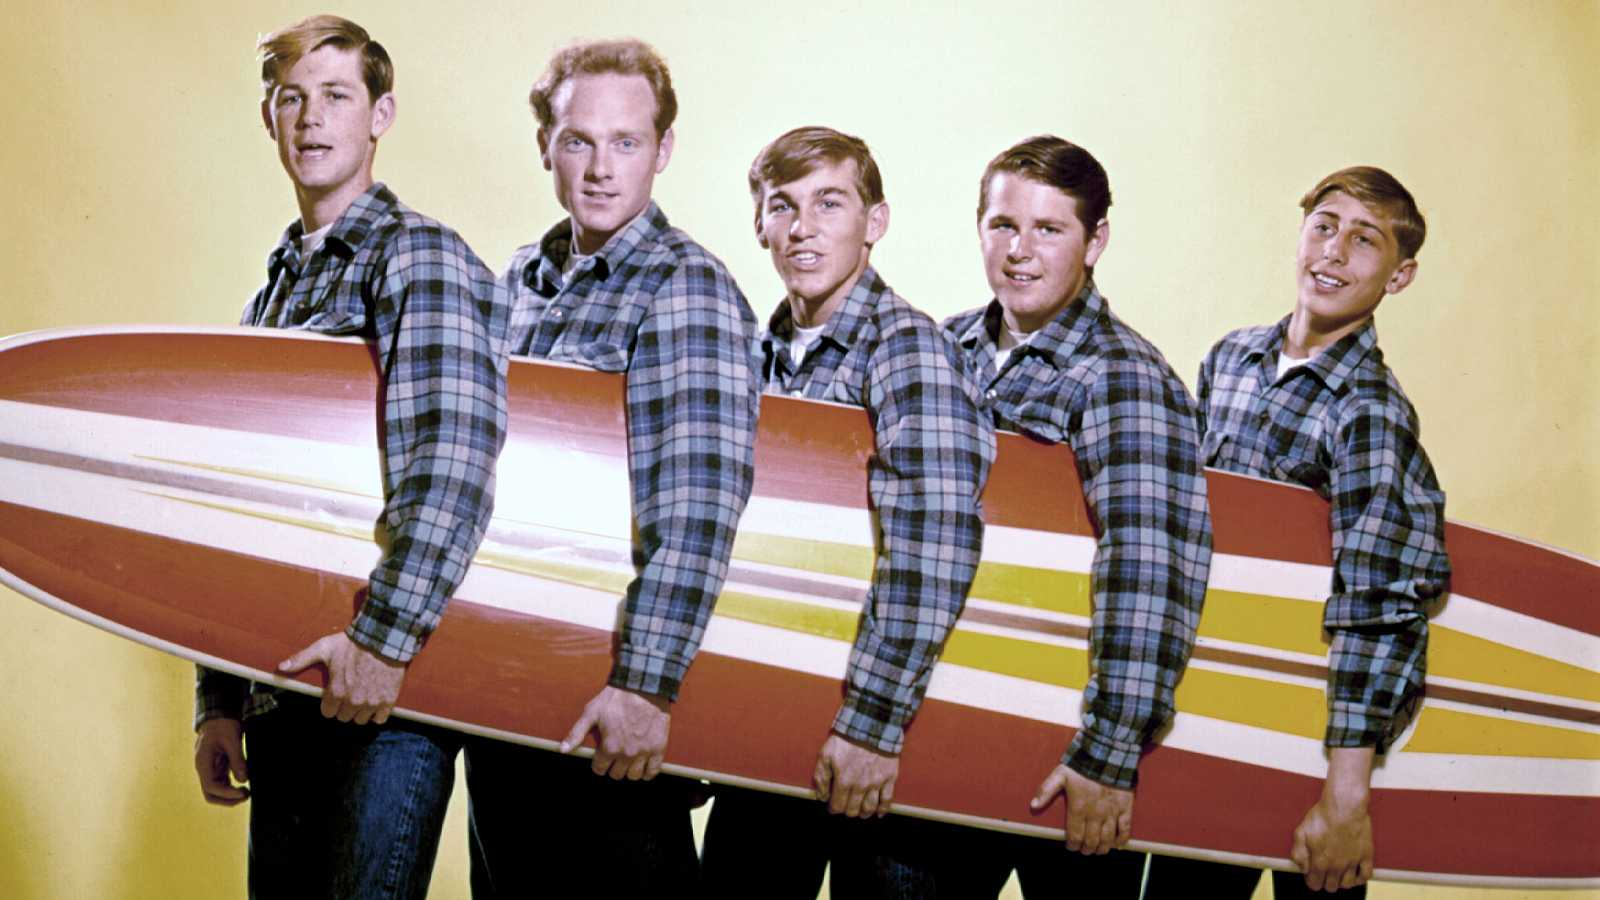 Canciones prohibidas - 'Student demonstration time' The Beach Boys - 09/10/16 - Escuchar ahora